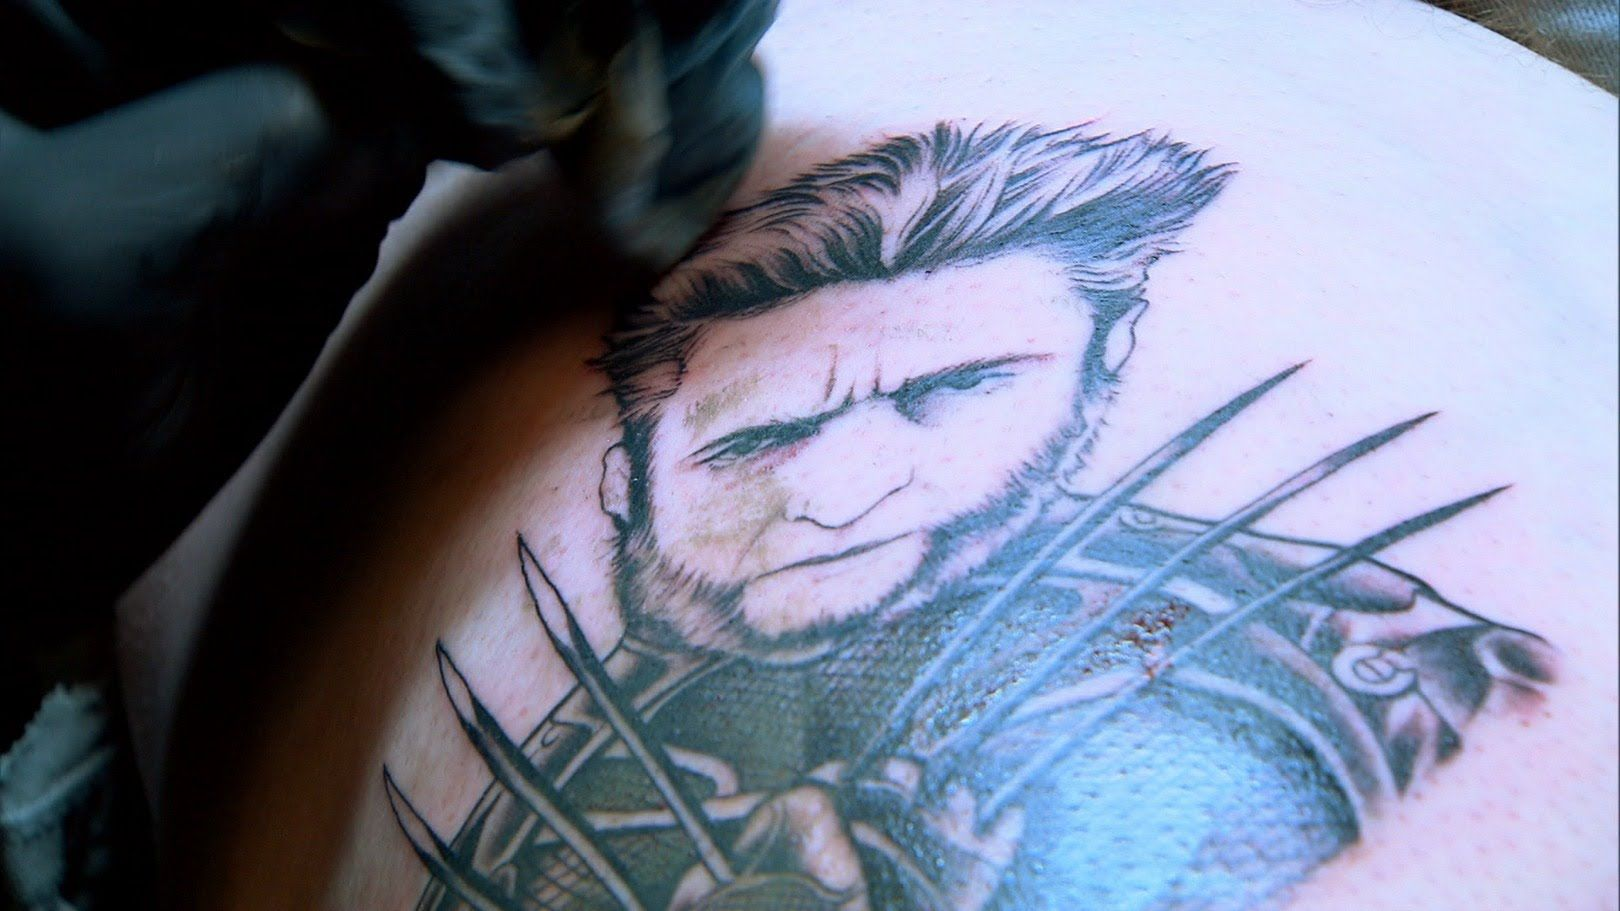 Proportion and Lines... they matter! ) Ink Master Season